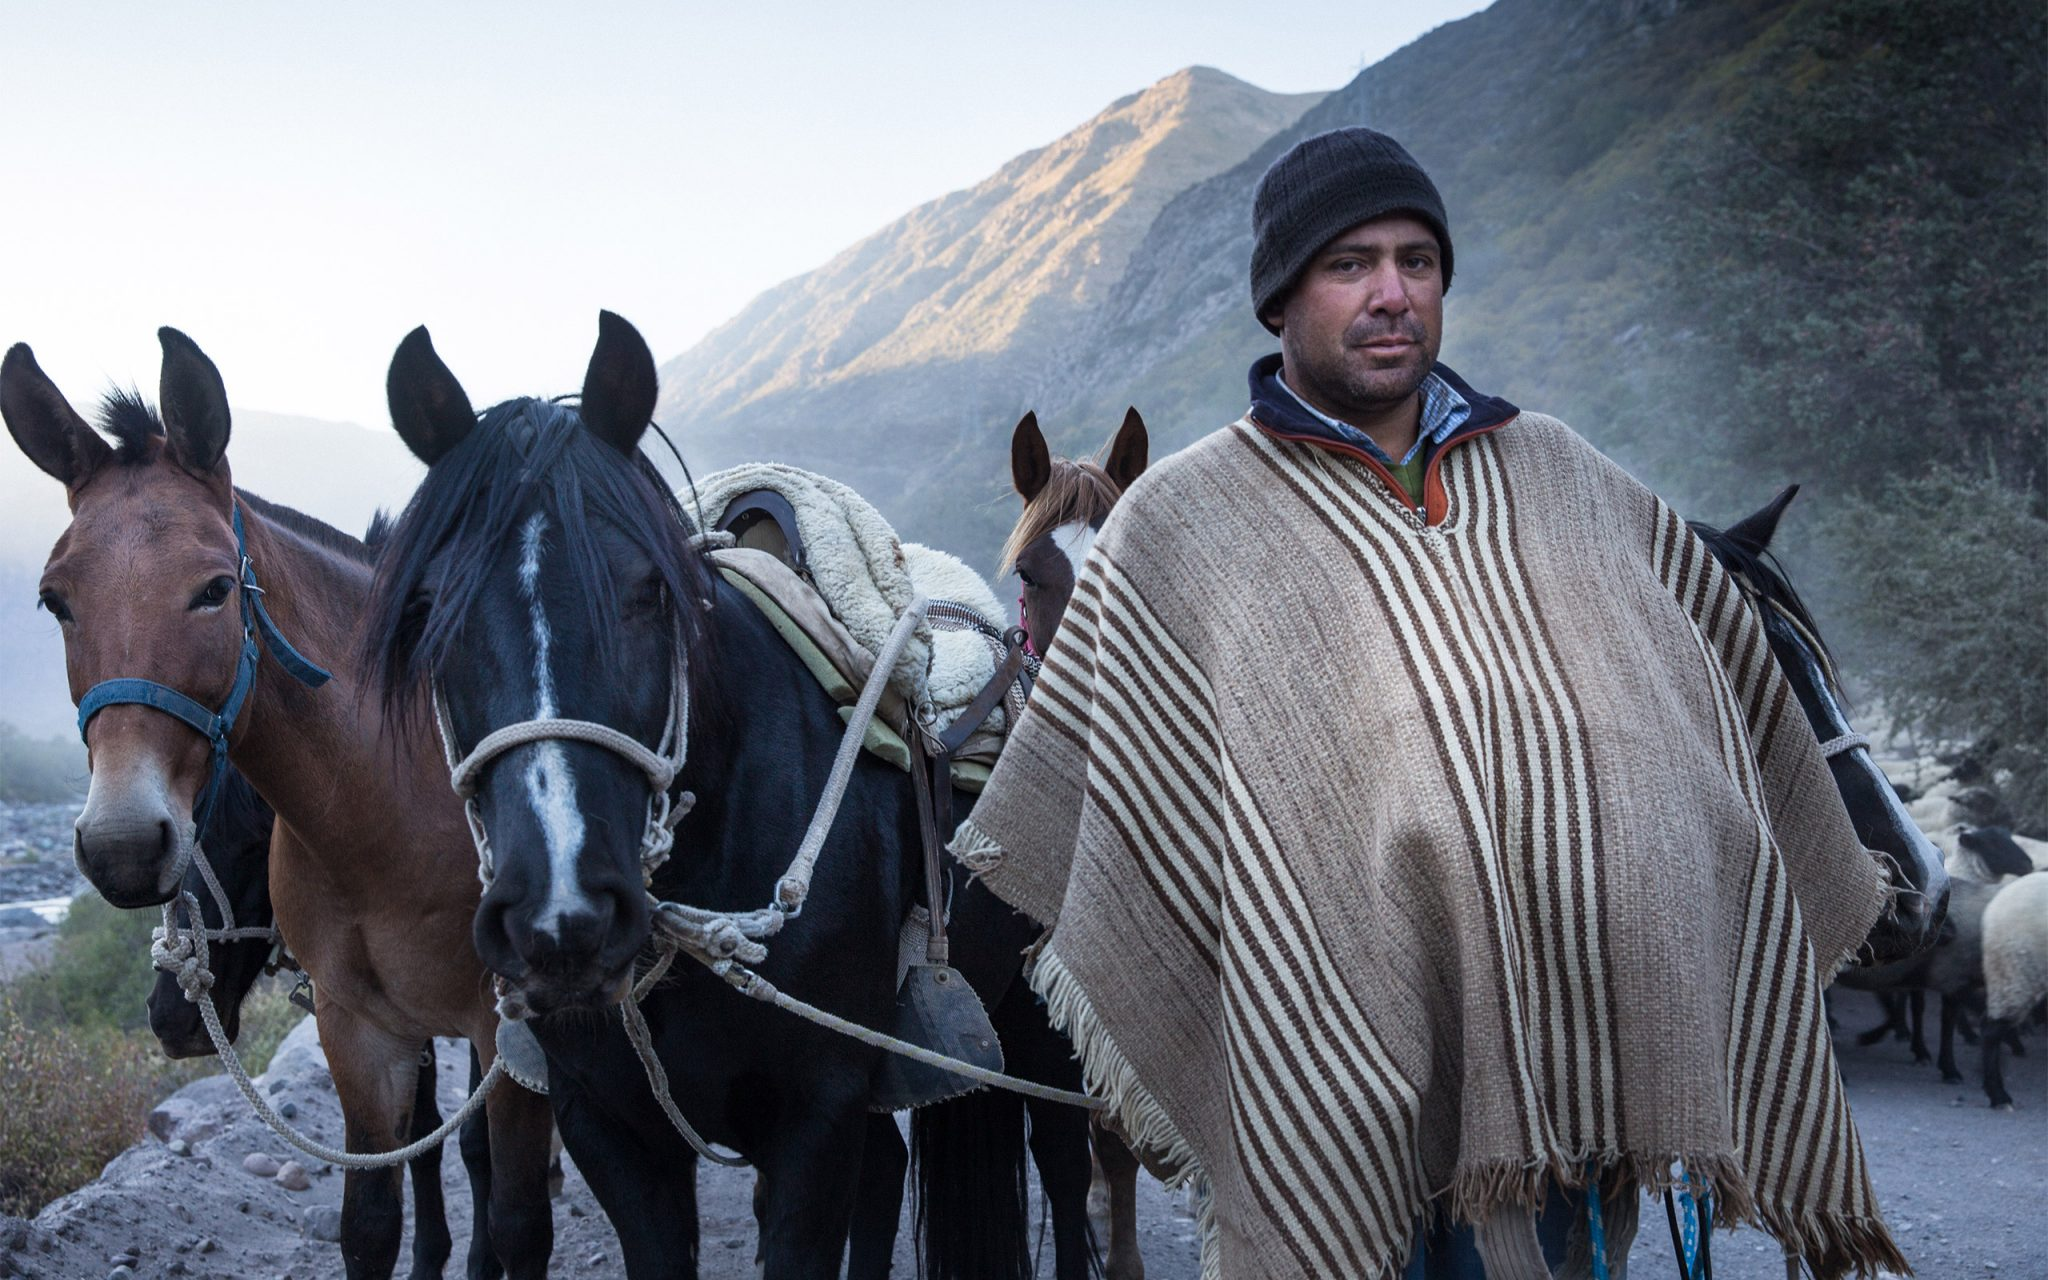 Portrait of 'Huaso Chileno' Chilean Cowboy, Andes Mountains. Shepherding a flock of 1500 sheep. Carey Marks Photography